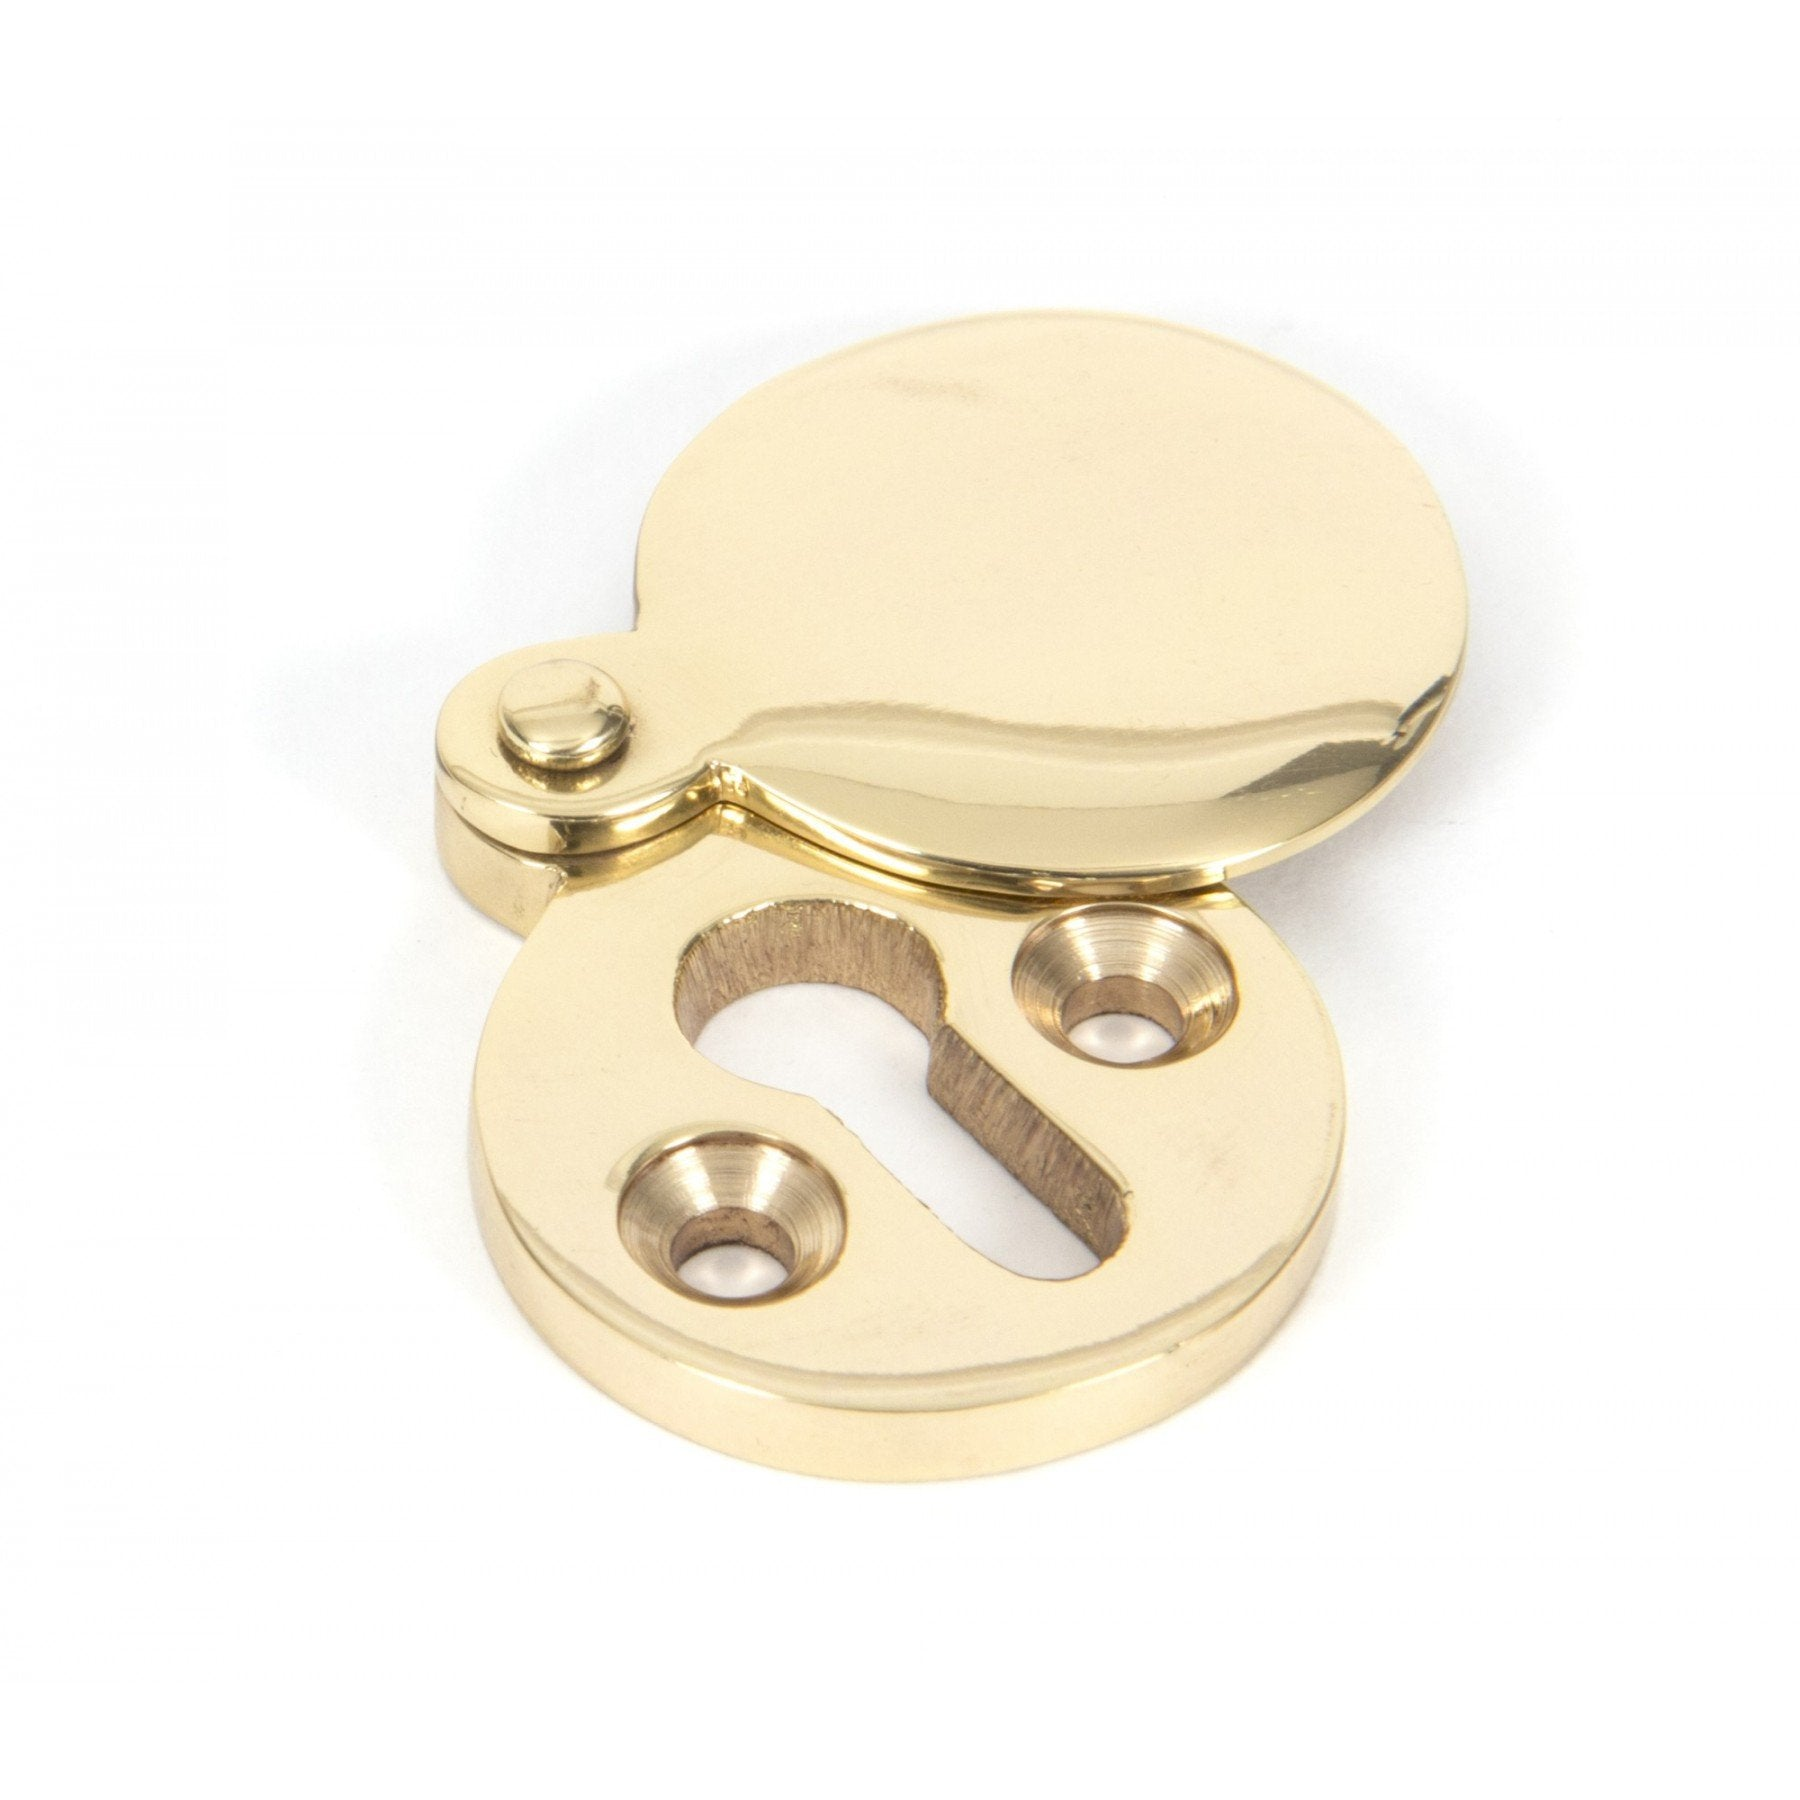 Polished Brass Round Escutcheon - No.42 Interiors